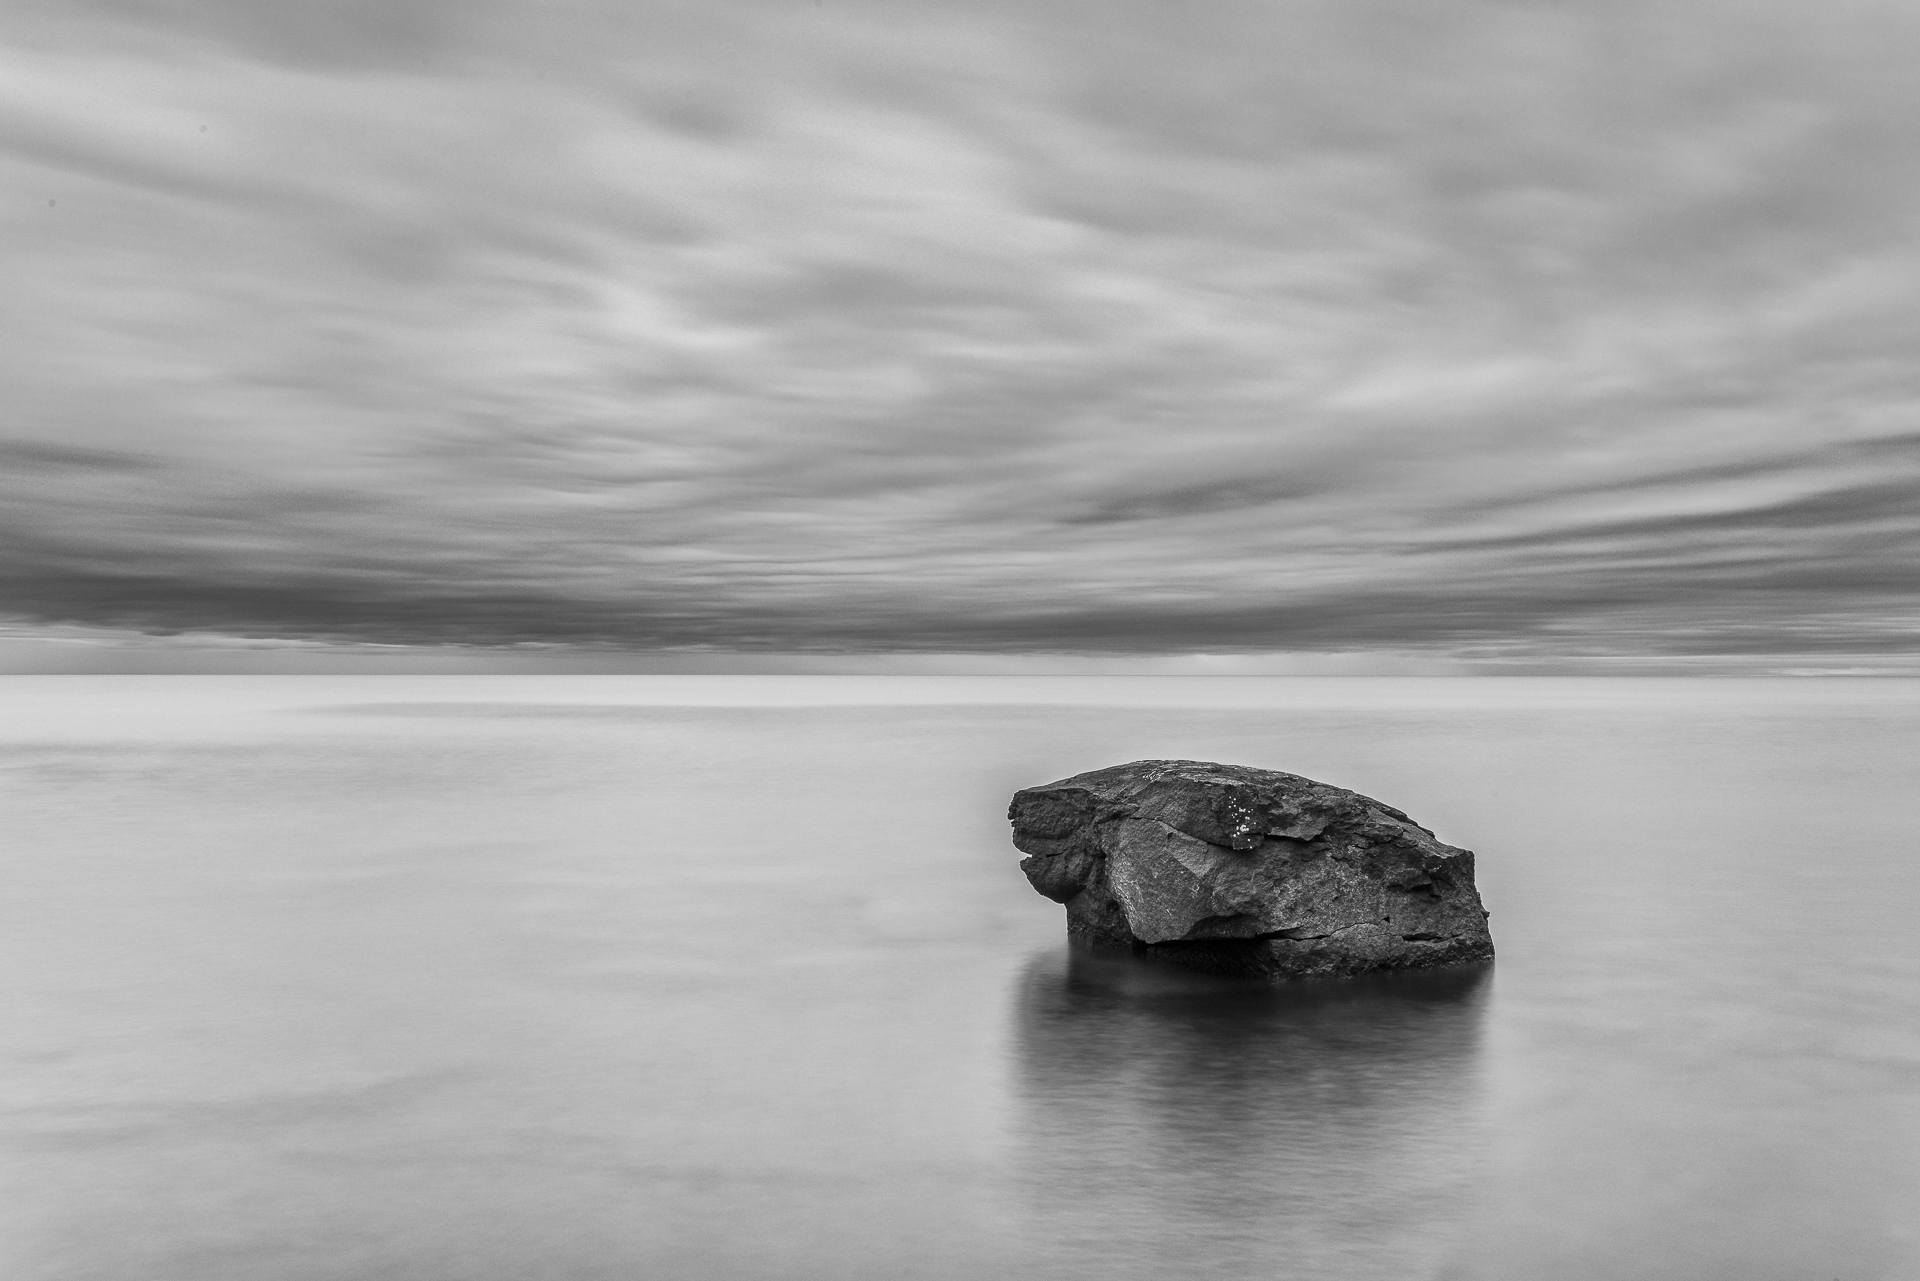 Lone rock. Lake Superior, MN.